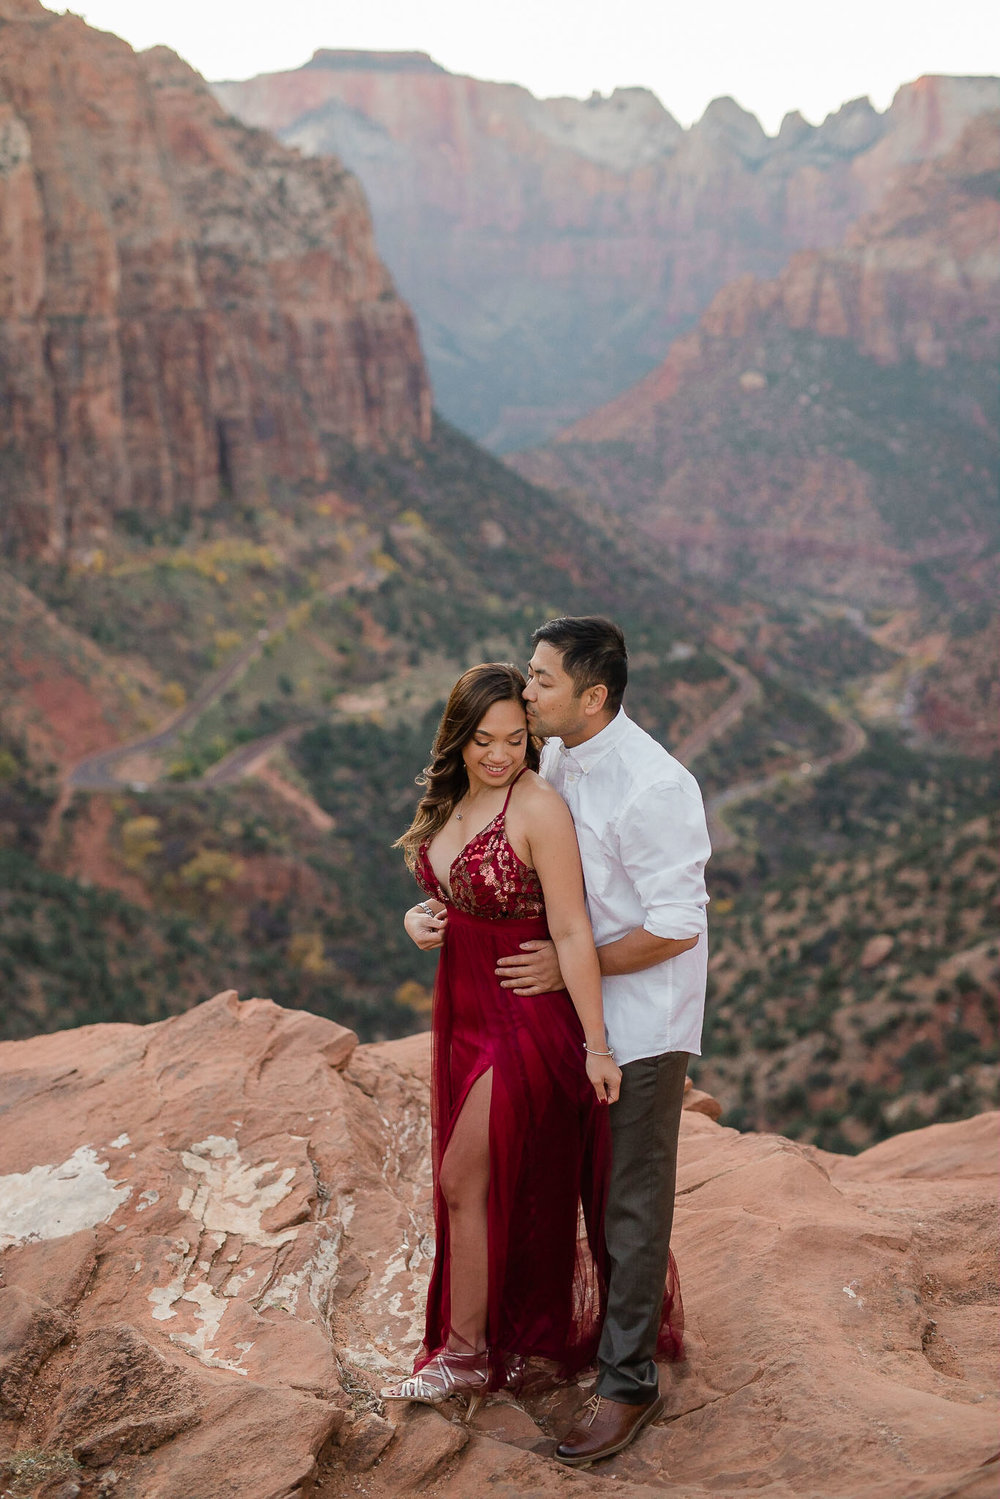 Guy holds girl and kisses her forehead at Canyon Overlook for their Zion National Park engagement session